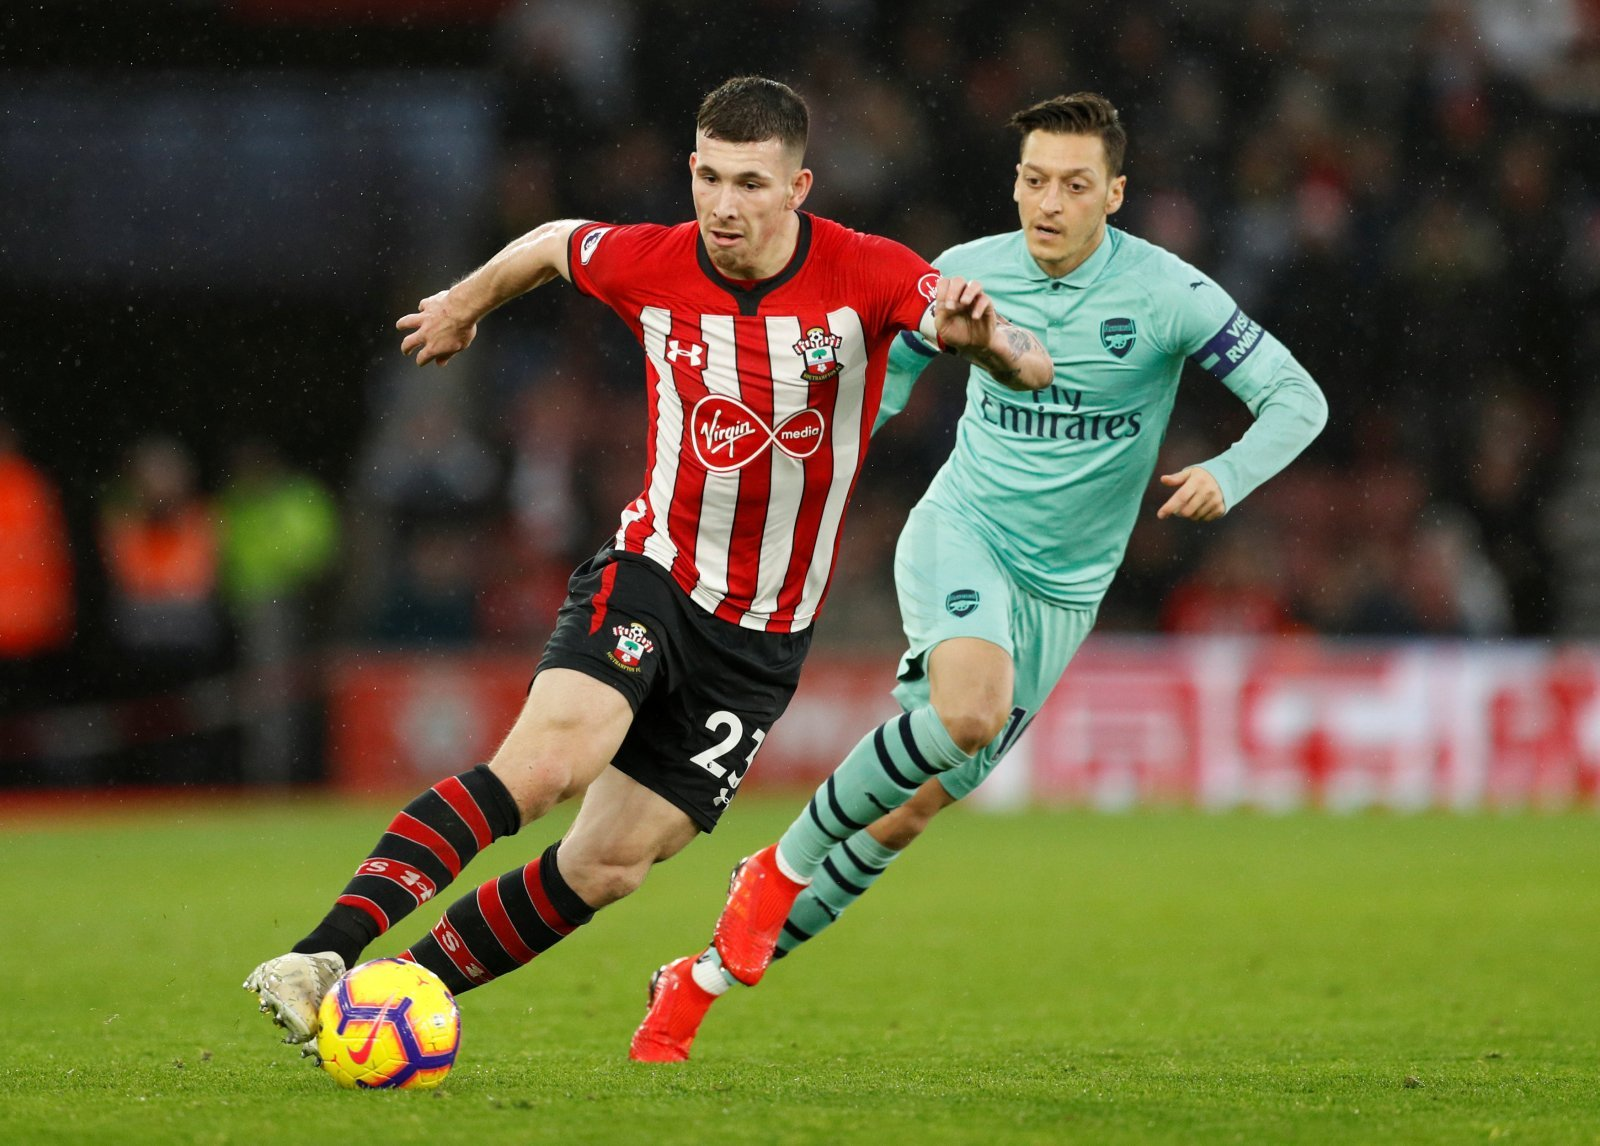 Matt Le Tissier: There will be people taking a look at Pierre-Emile Hojbjerg